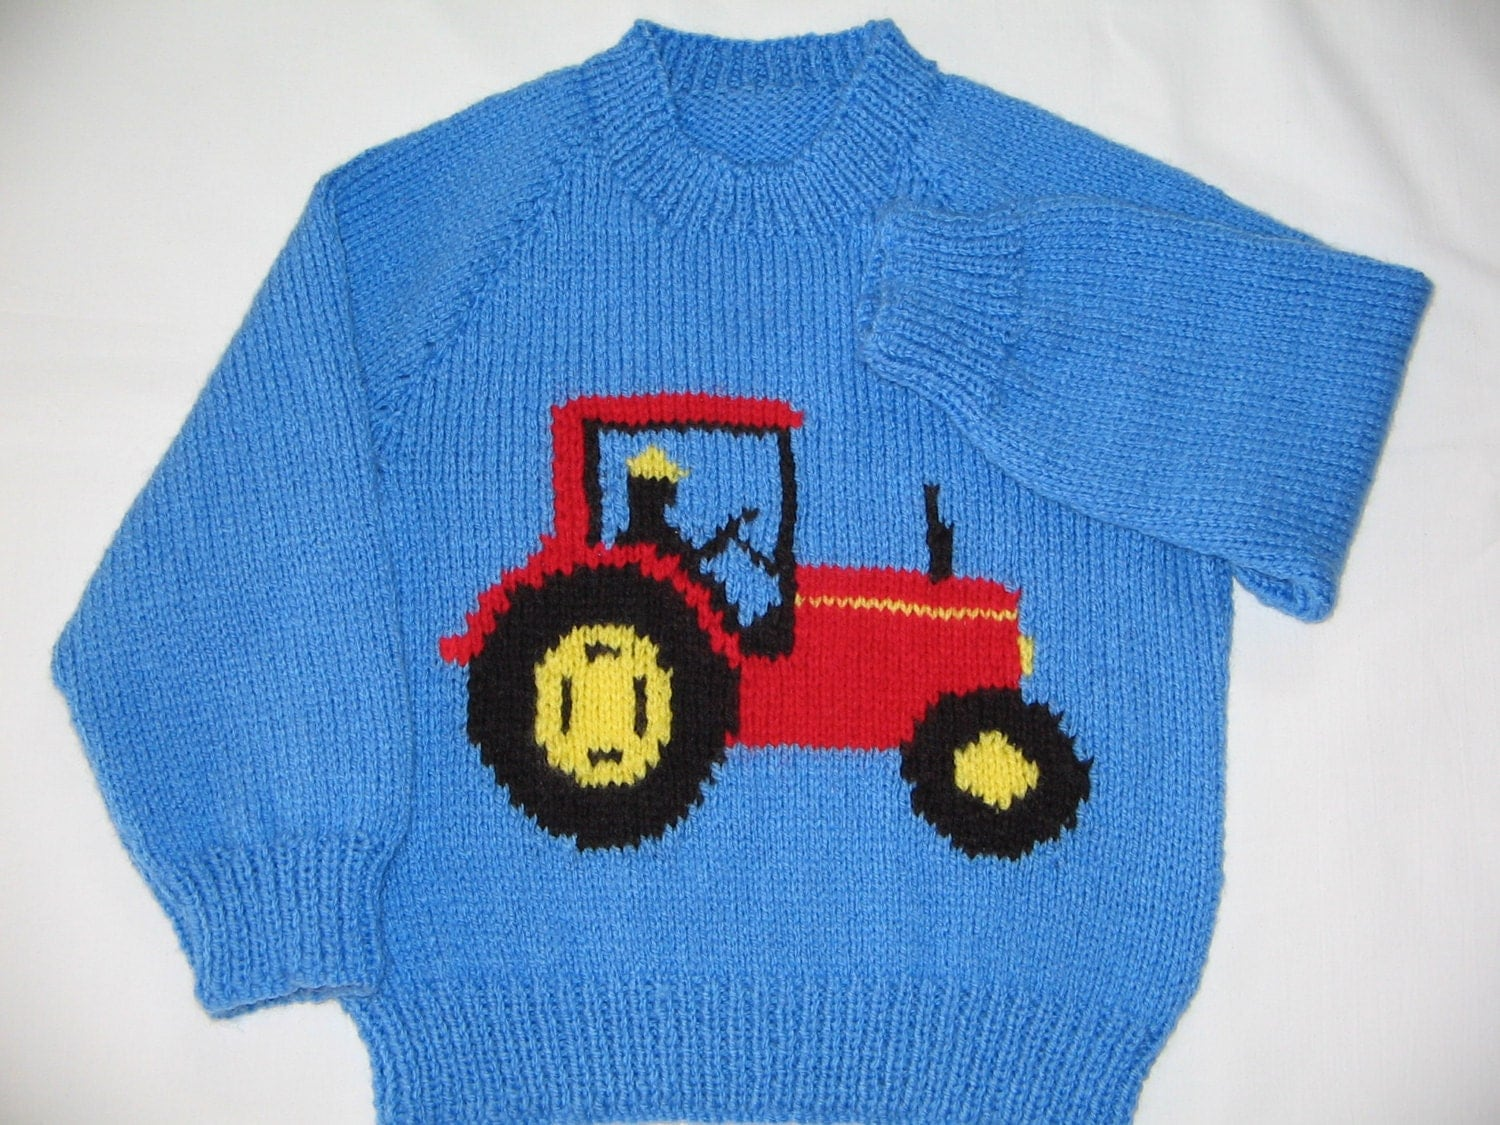 Knitting Pattern Tractor Jumper : Hand Knitted Tractor Jumper Chest 23/59cm